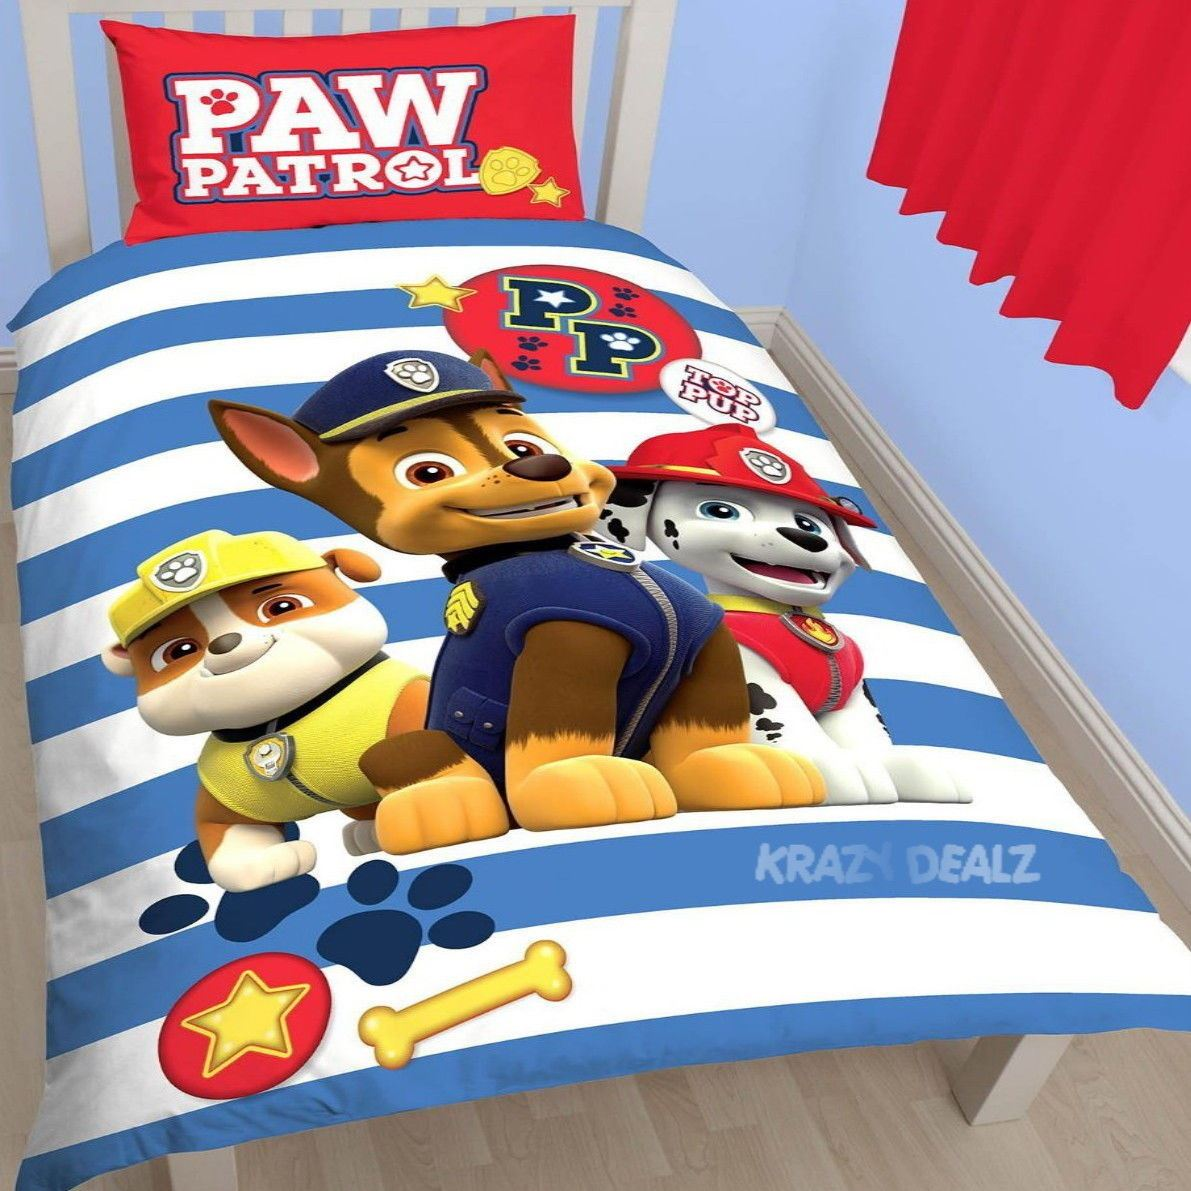 Official-Paw-Patrol-Licensed-Duvet-Covers-Single-Double-Chase-Skye-Marshall thumbnail 20